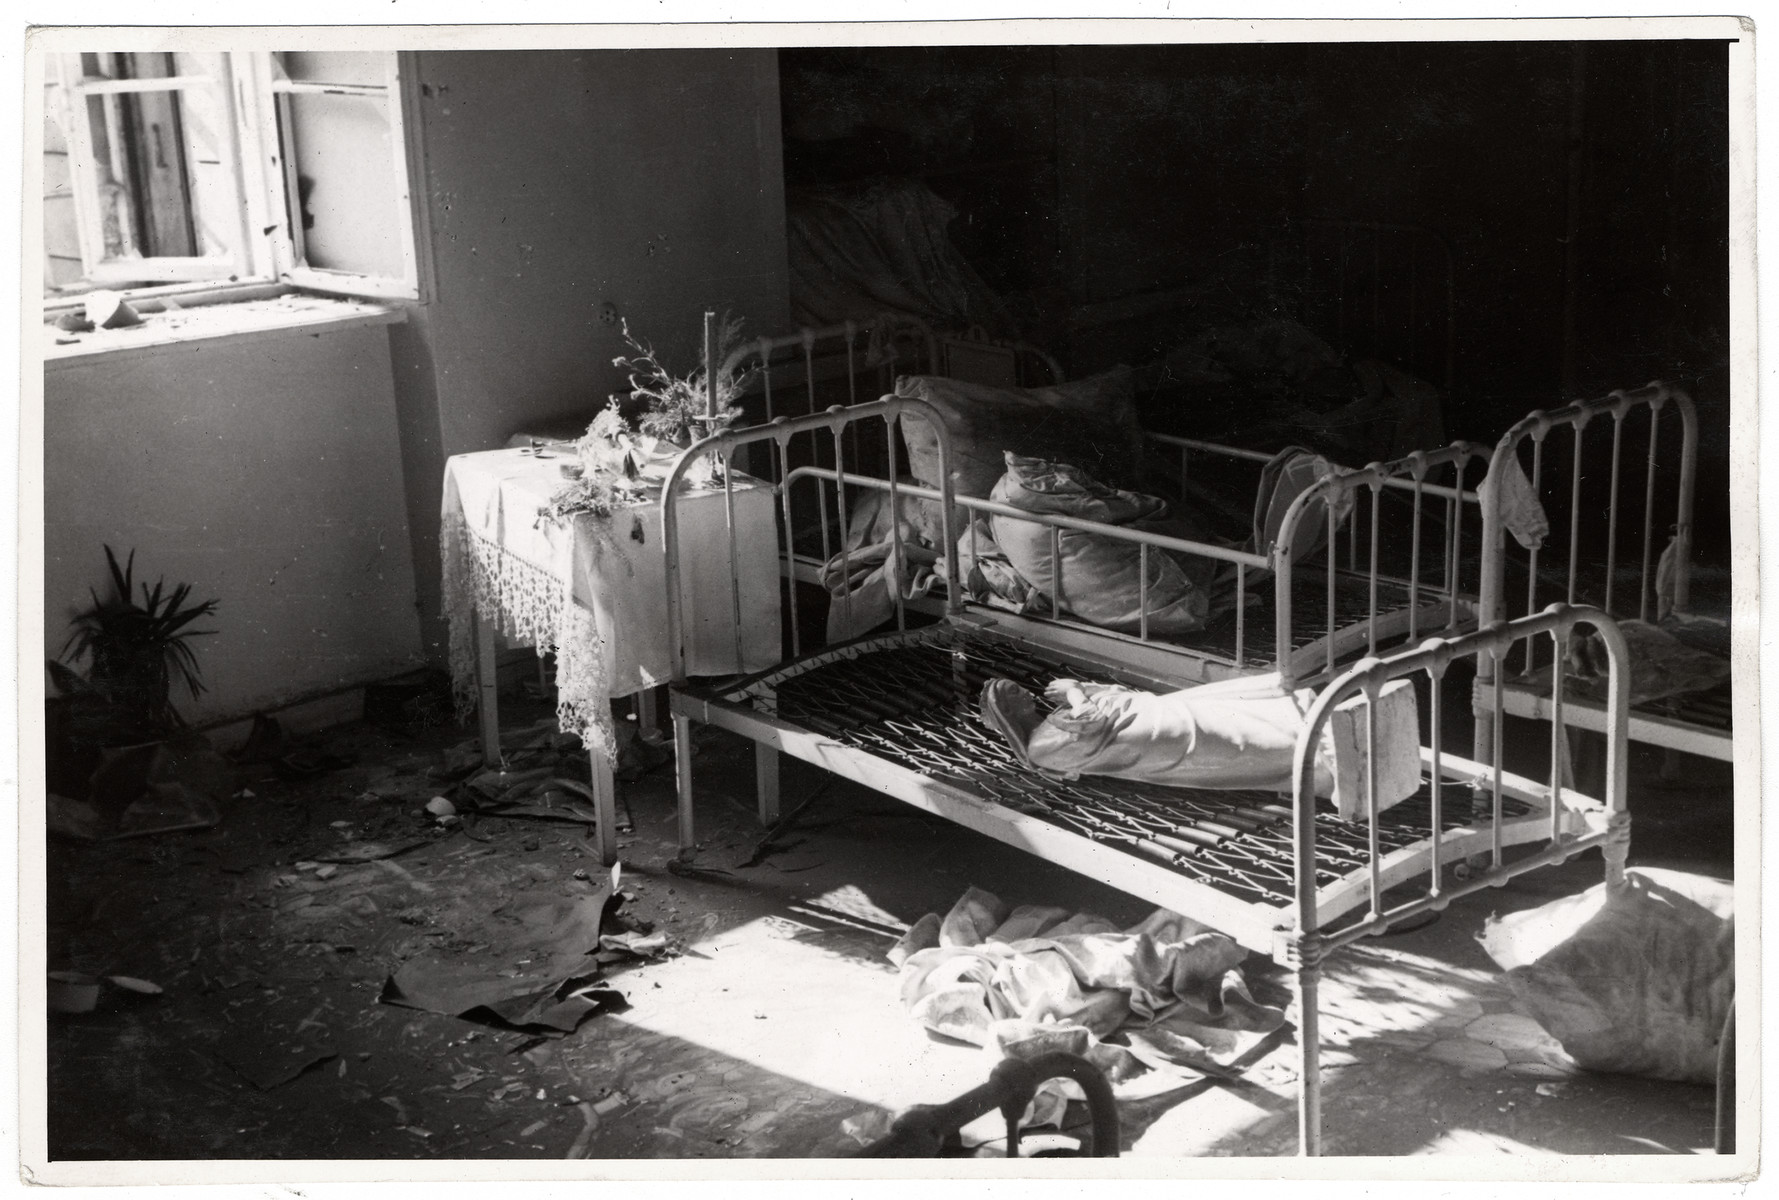 Interior view of the partially destroyed Catholic Hospital of the Transfiguration, one of the largest hospitals in Warsaw.